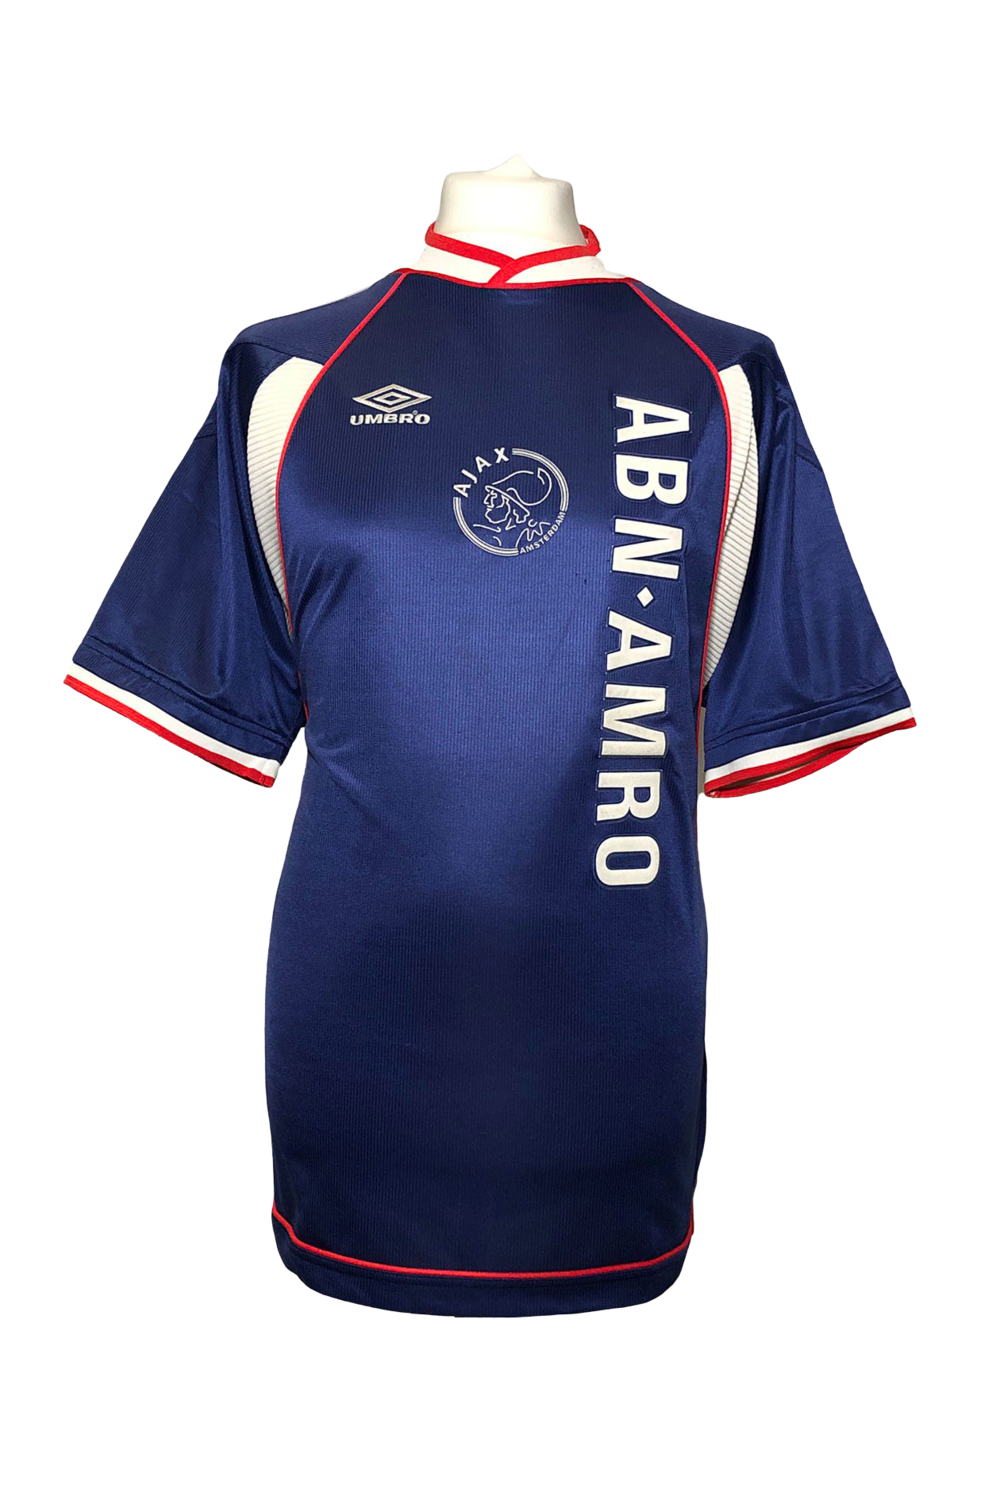 Maillot Ajax Away 1999/00